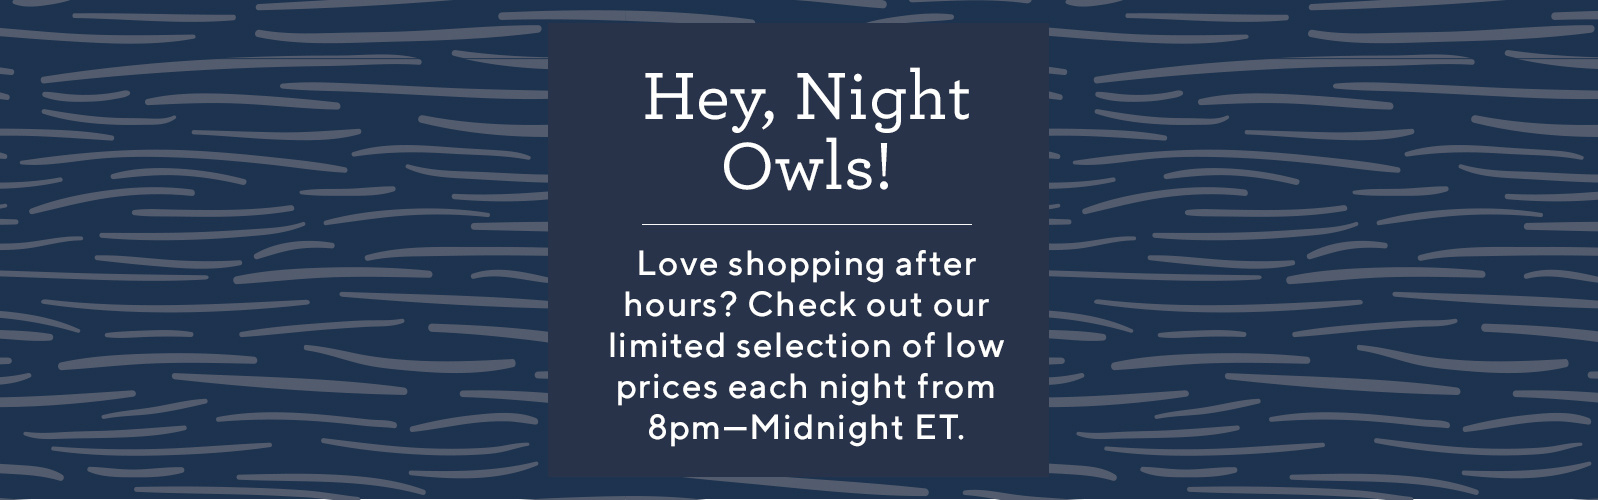 Hey, Night Owls!  Love shopping after hours? Check out our limited selection of low prices each night from 8pm—Midnight ET.